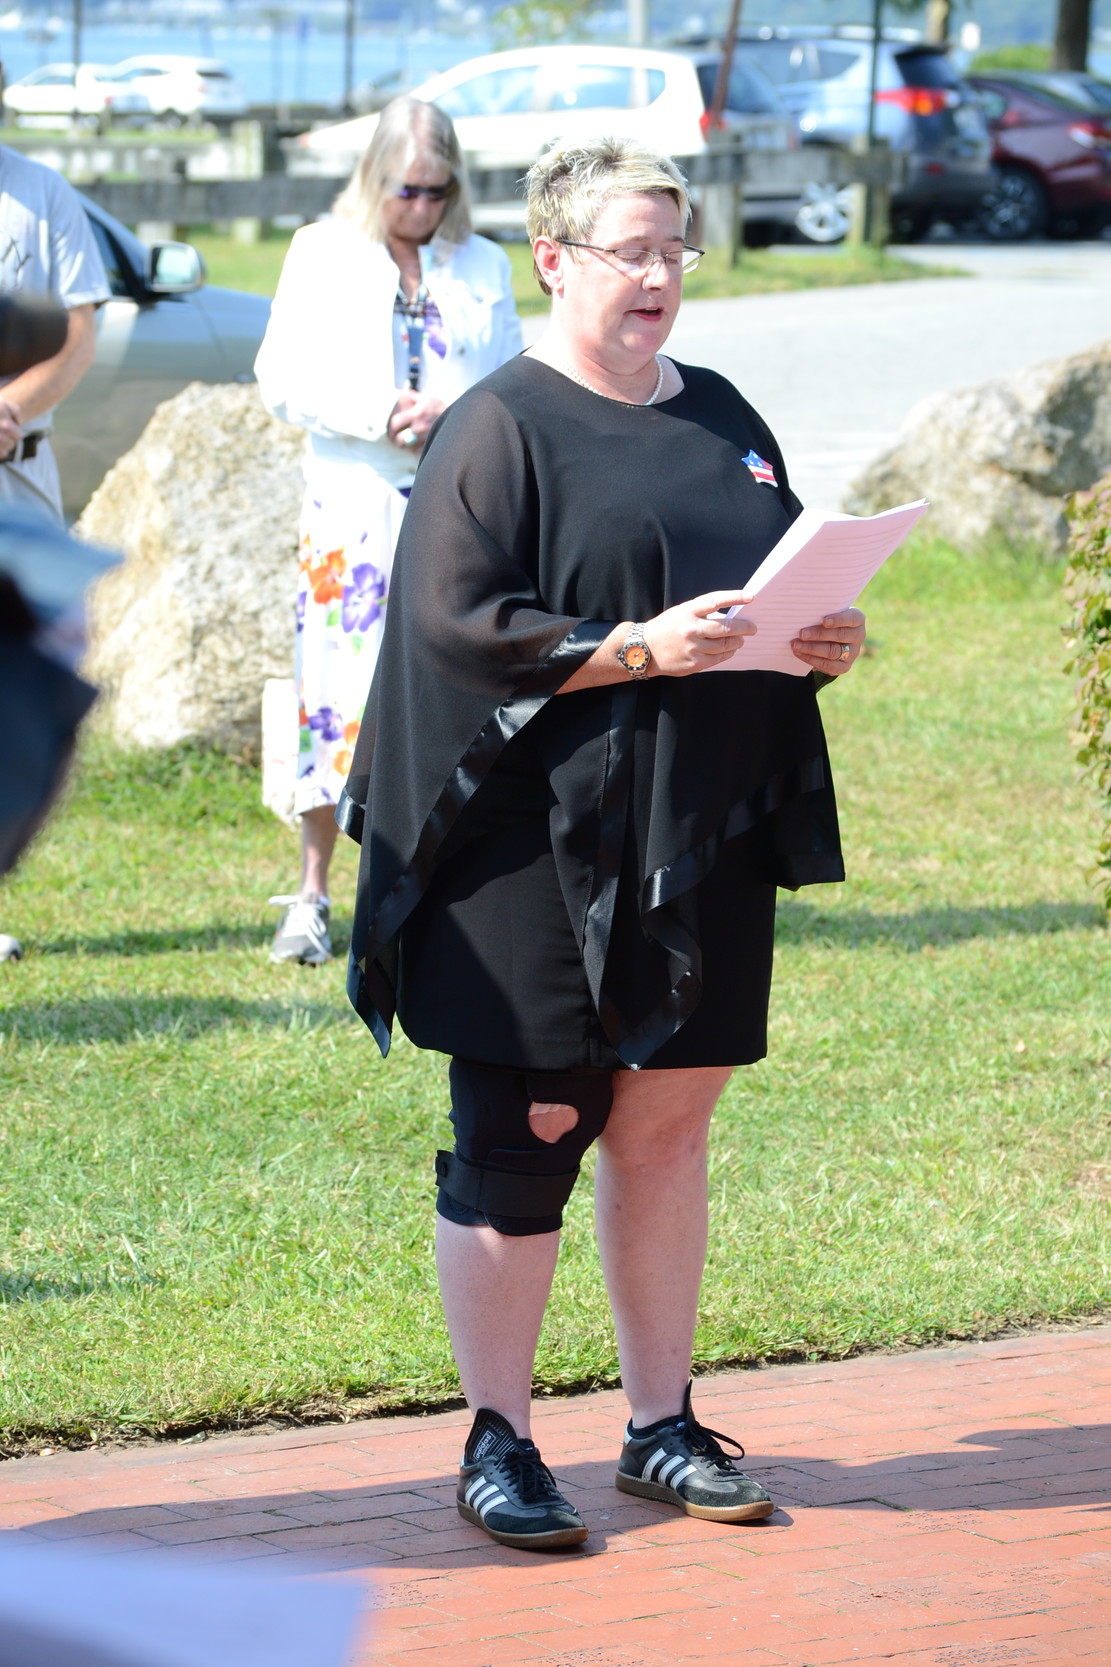 Judy Cobden, who was working at the New York Stock Exchange on Ground Zero when the attacks occurred, recounted her story at the Oakland Beach Memorial, wearing the same shoes she wore on the morning of Sept. 11, 2011.